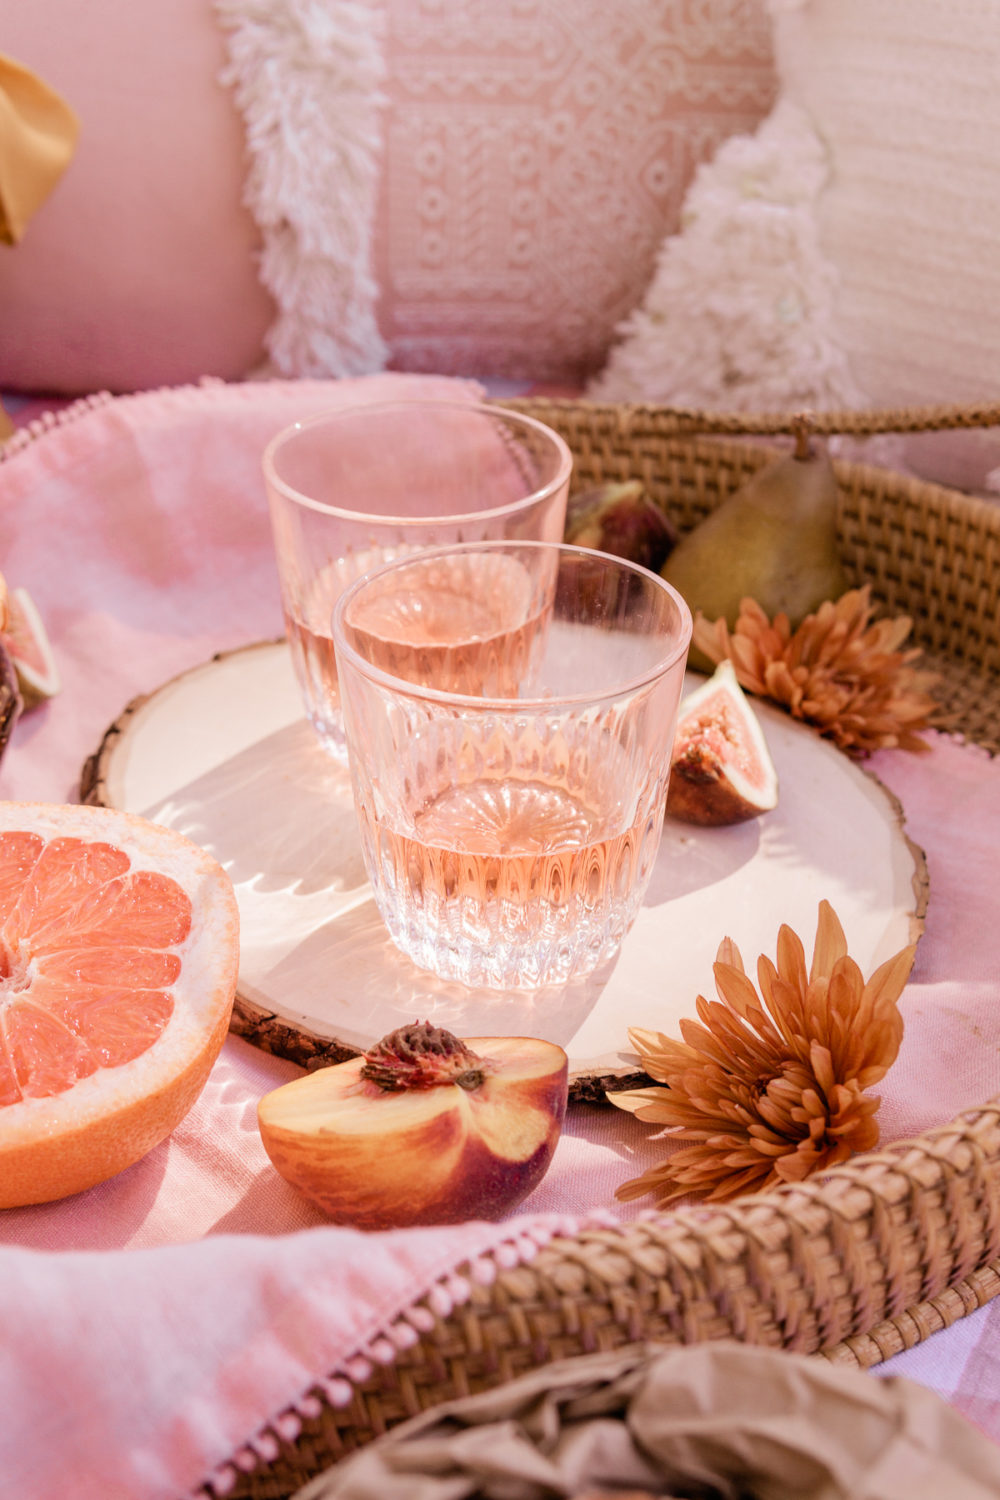 There are two glasses filled with rosé wine on top of a piece of wood onto of a pink napkin that is in a rattan tray. There are pink pillows in the background. There is also half a grapefruit, half a peach, and a sliced fig on the rattan tray